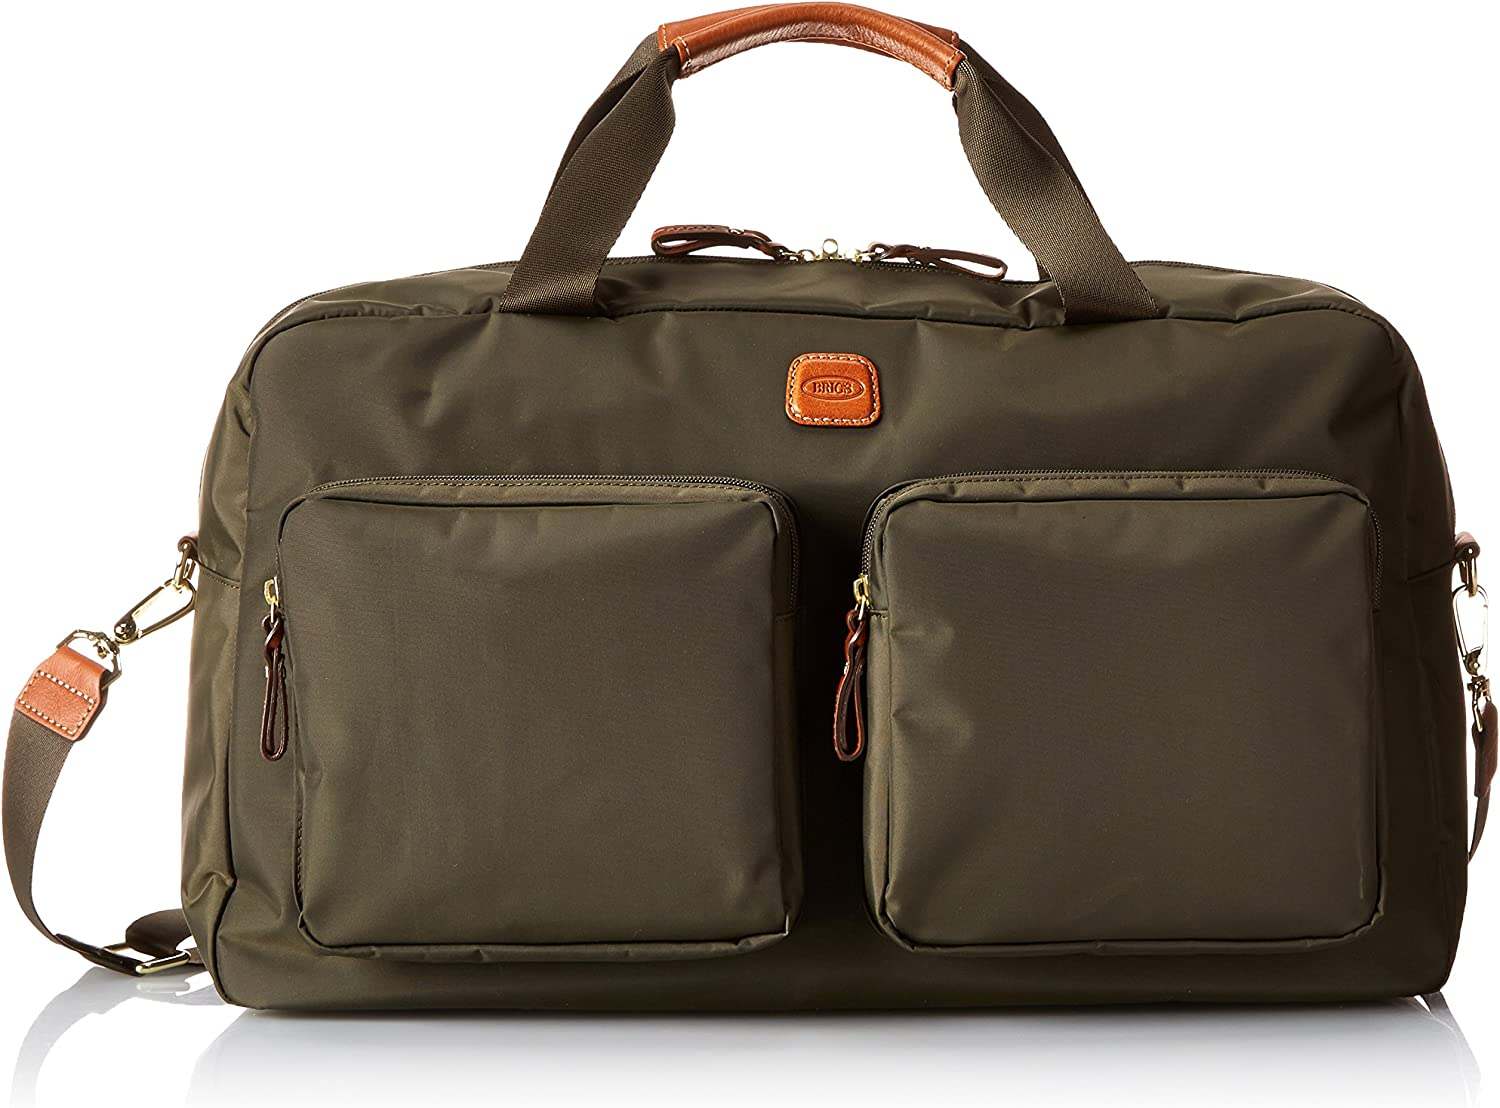 Bric's Luggage Bxl32192 High quality X Bag Olive Trim Cognac Boarding Duffel Super beauty product restock quality top